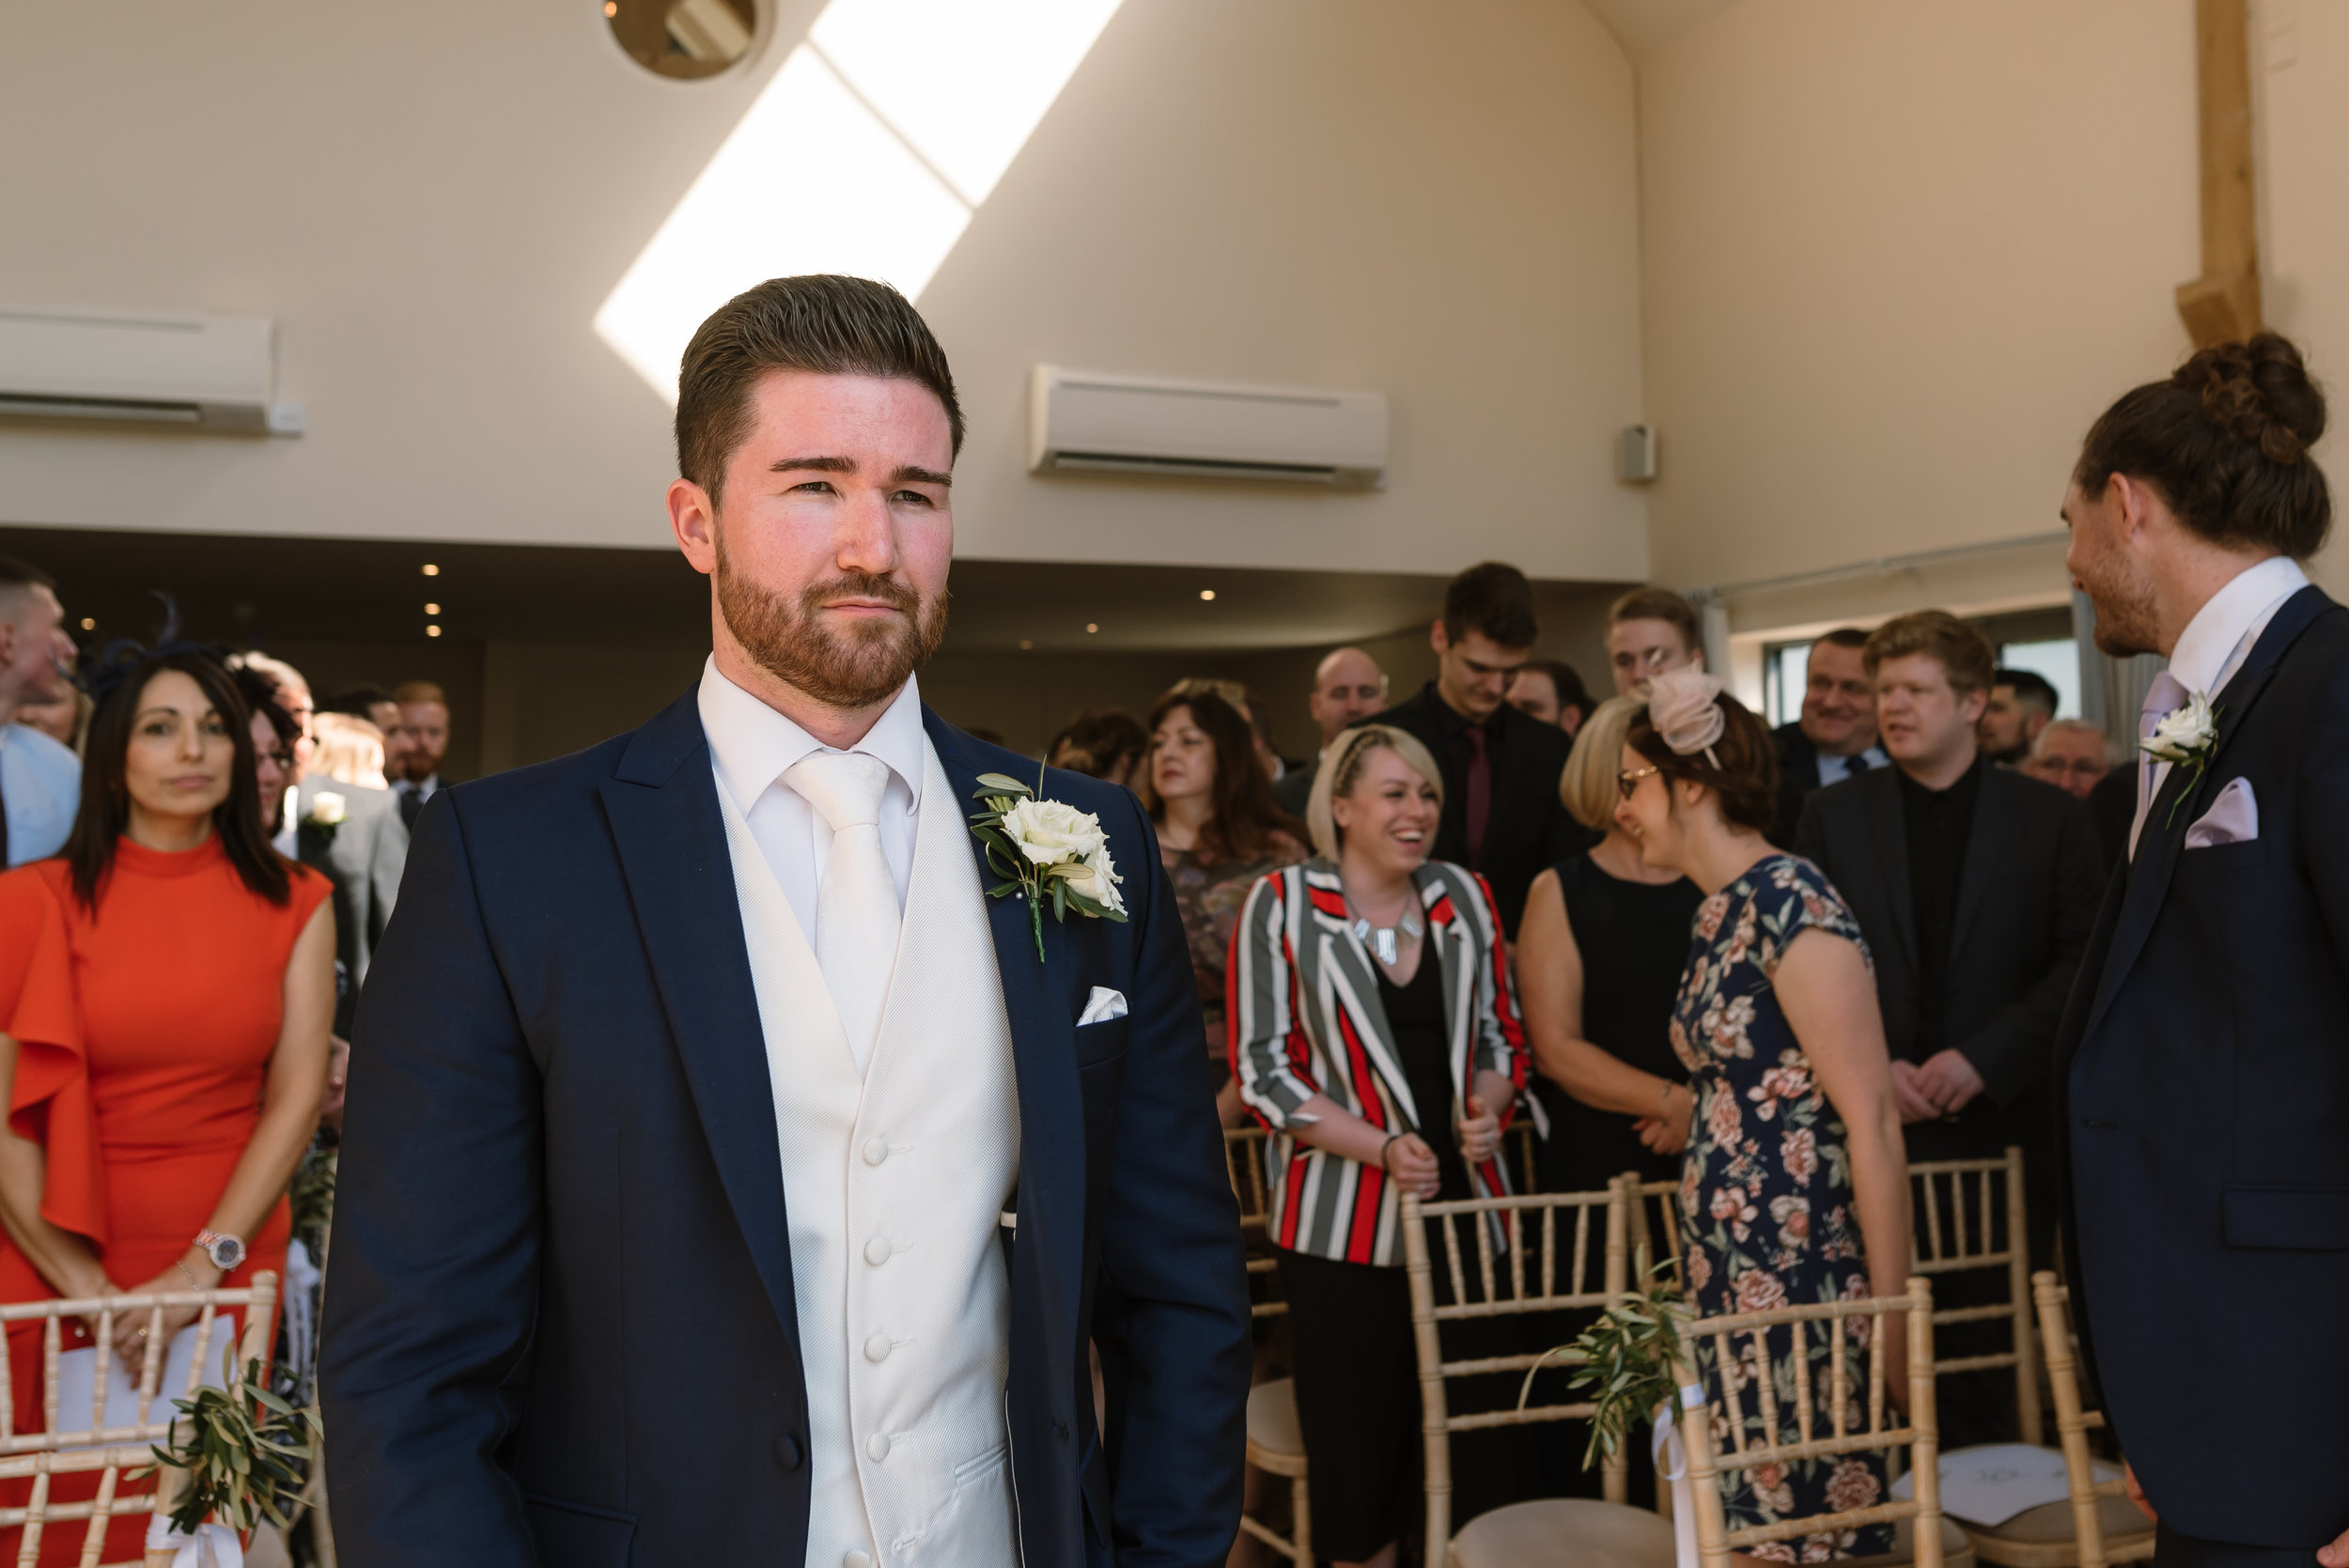 Sarah-Fishlock-Photography : Hampshire-wedding-photographer-hampshire : fleet-wedding-photographer-fleet : Millbridge-Court-Wedding-Photographer : Millbridge-Court-Wedding-Venue : Surrey-wedding-venue-553.jpg